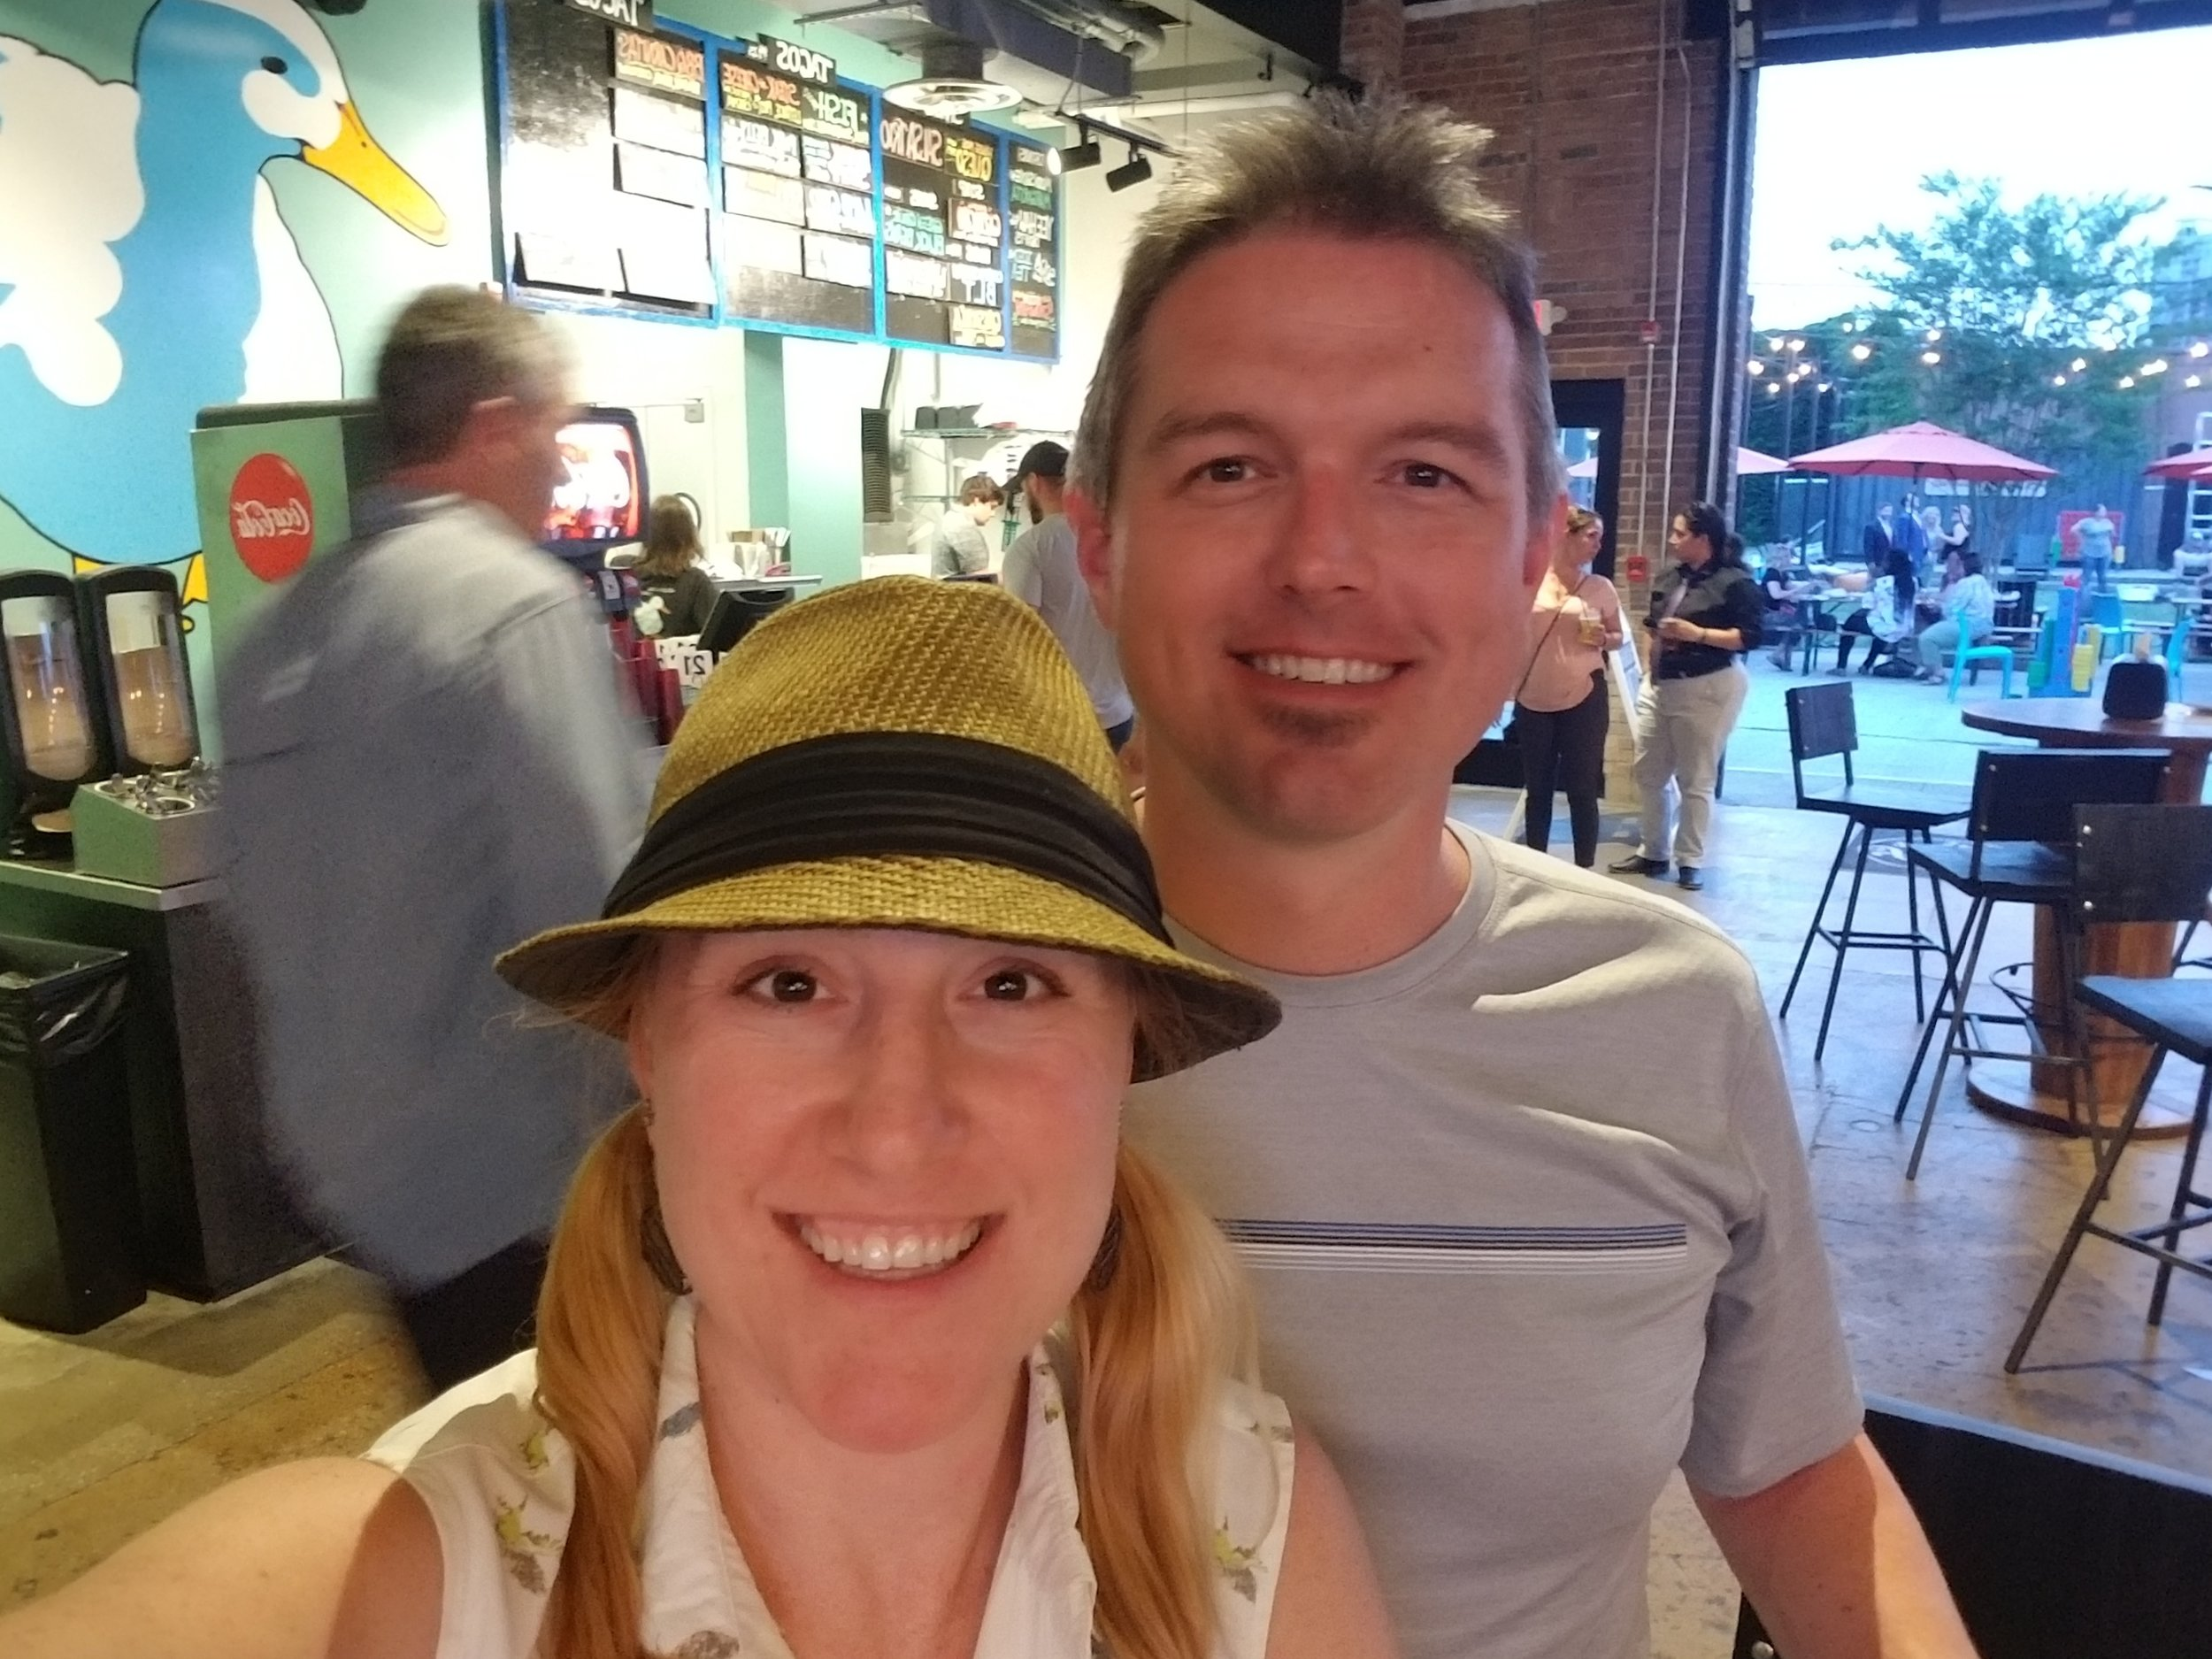 Selfie while we played Trivia at Yee-Haw Brewing Company which shared the building with Ole Smoky Distillery